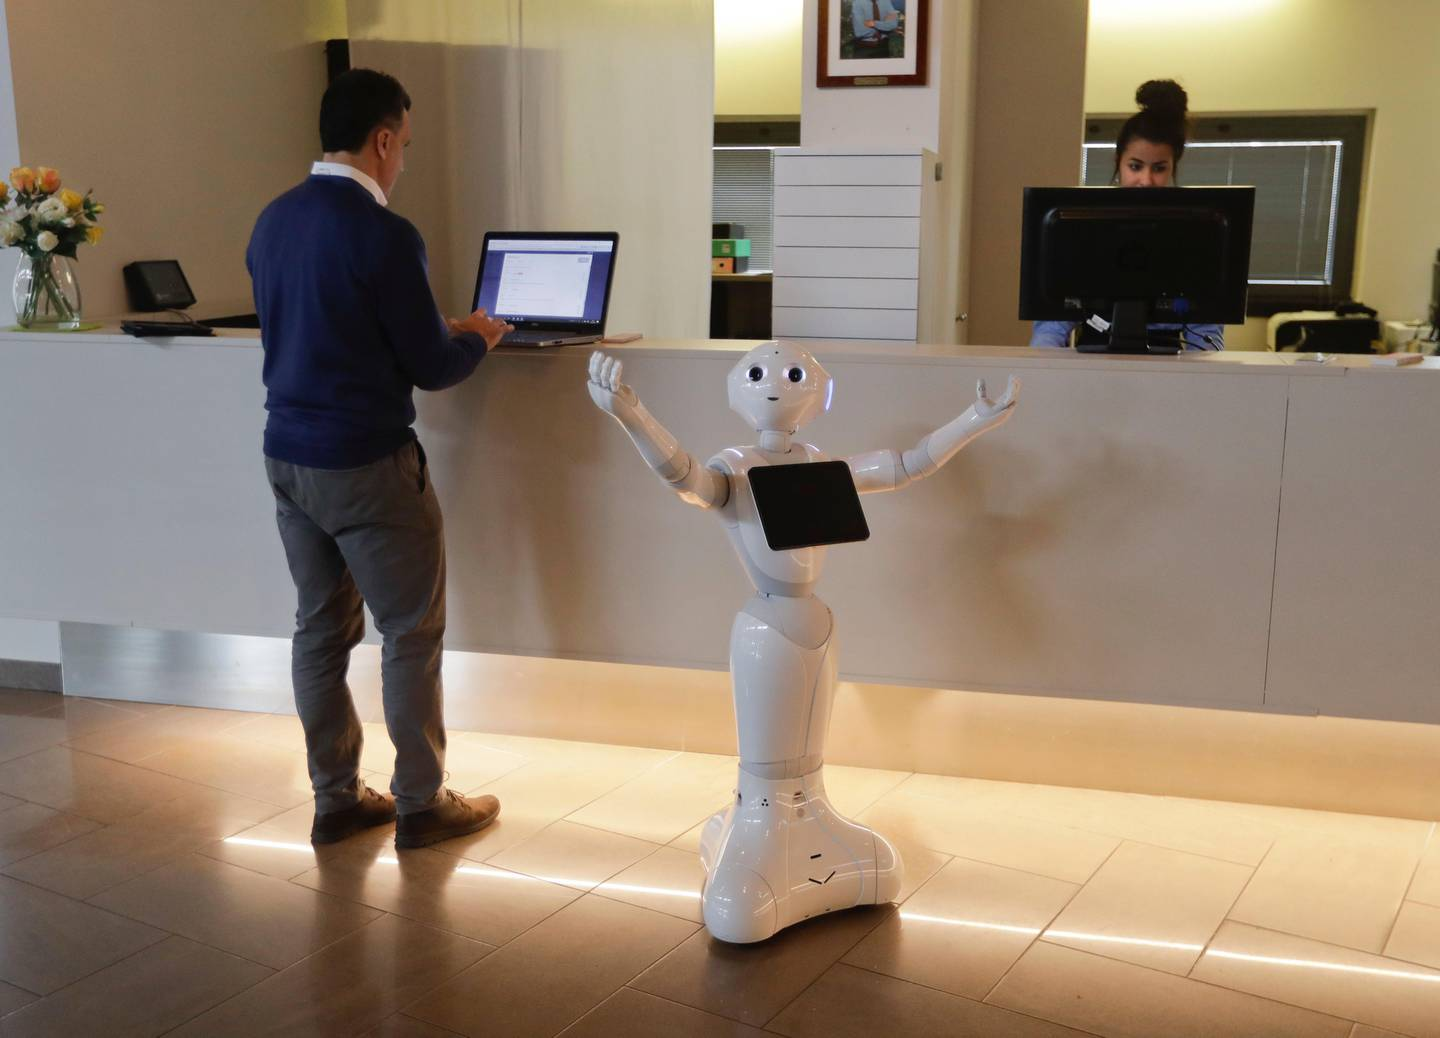 Robot Robby Pepper stands at the front desk of hotel in Peschiera del Garda, northern Italy, Monday, March 12, 2018. Robby Pepper, billed as Italy?Äôs first robot concierge, has been programed to answer simple guest questions in Italian, English and German, the humanoid, speaking robot will be deployed all season at a hotel on the popular Garda Lake to help relieve the desk staff of simple, repetitive questions. Standing at left is Jampaa Innovative digital services product manager Marco Vescovi. (AP Photo/Luca Bruno)